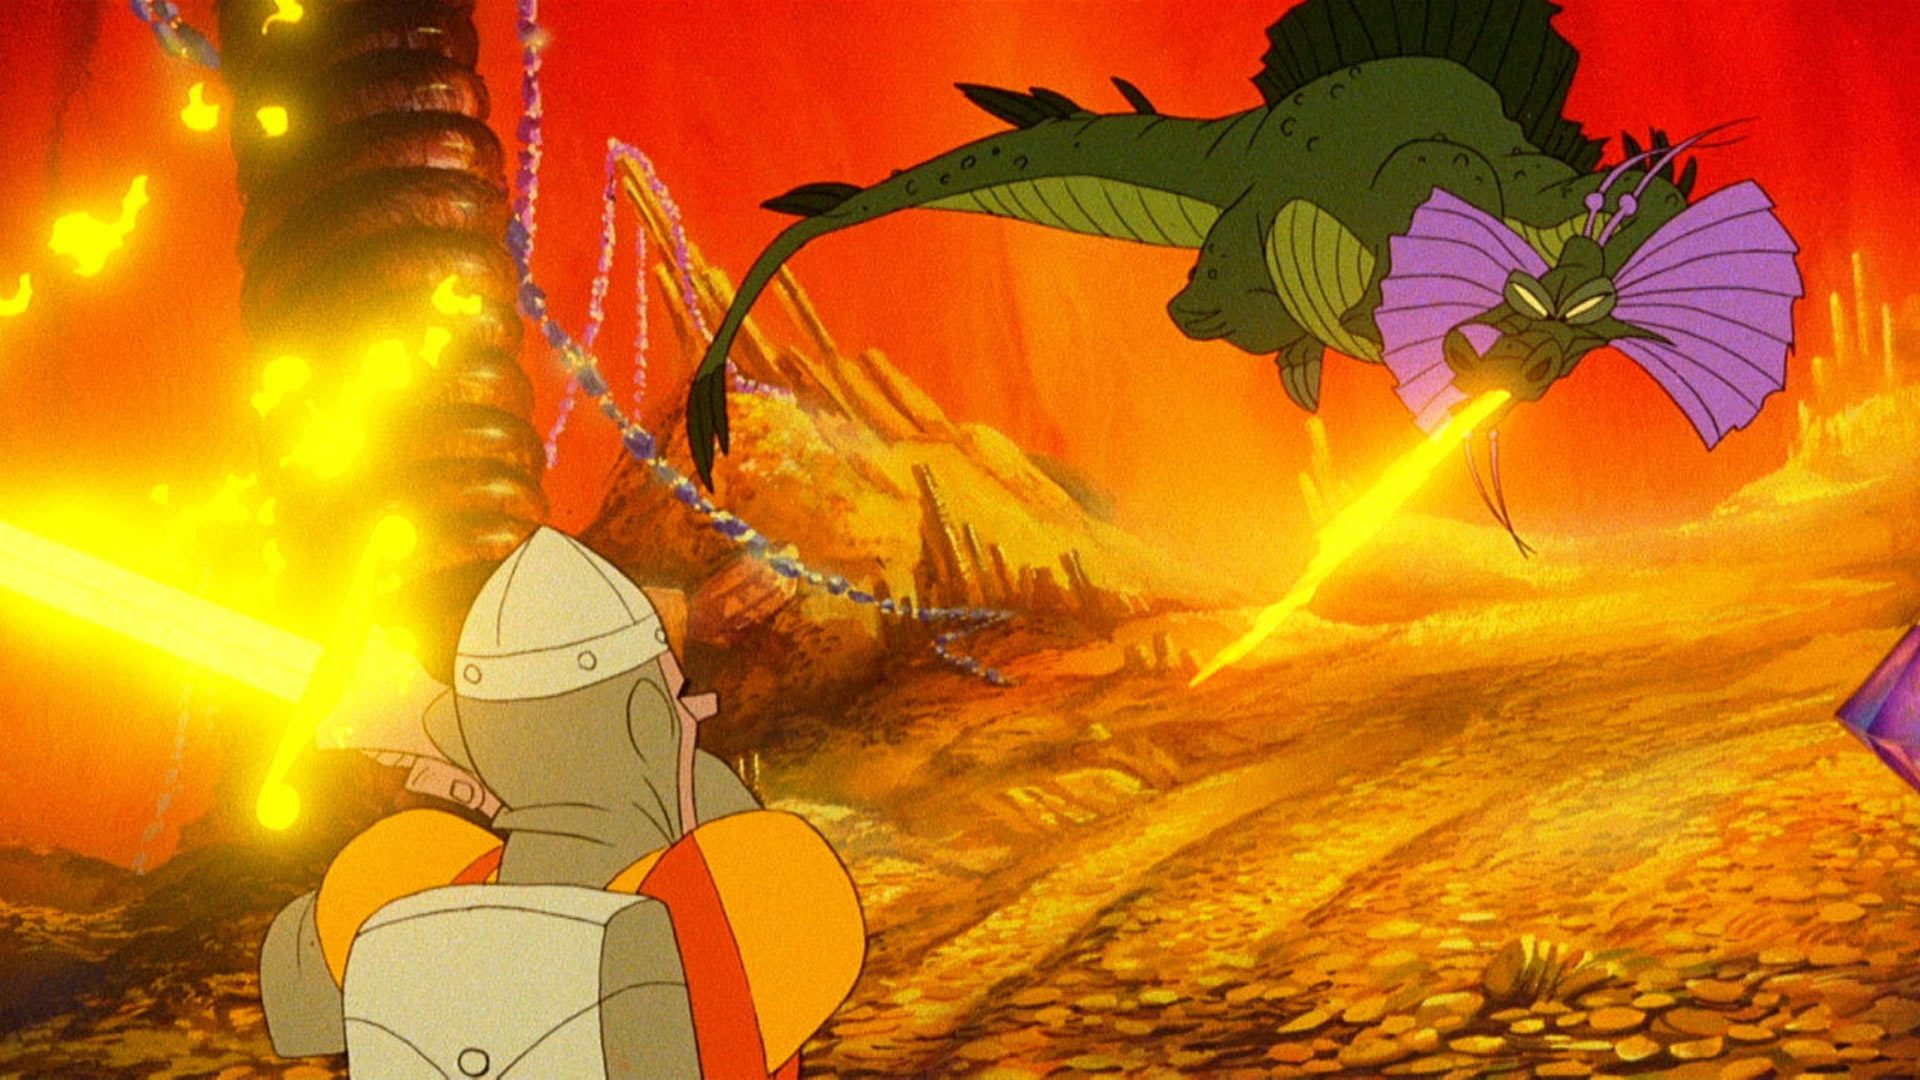 Dragon's Lair Trilogy Wallpaper Screenshot